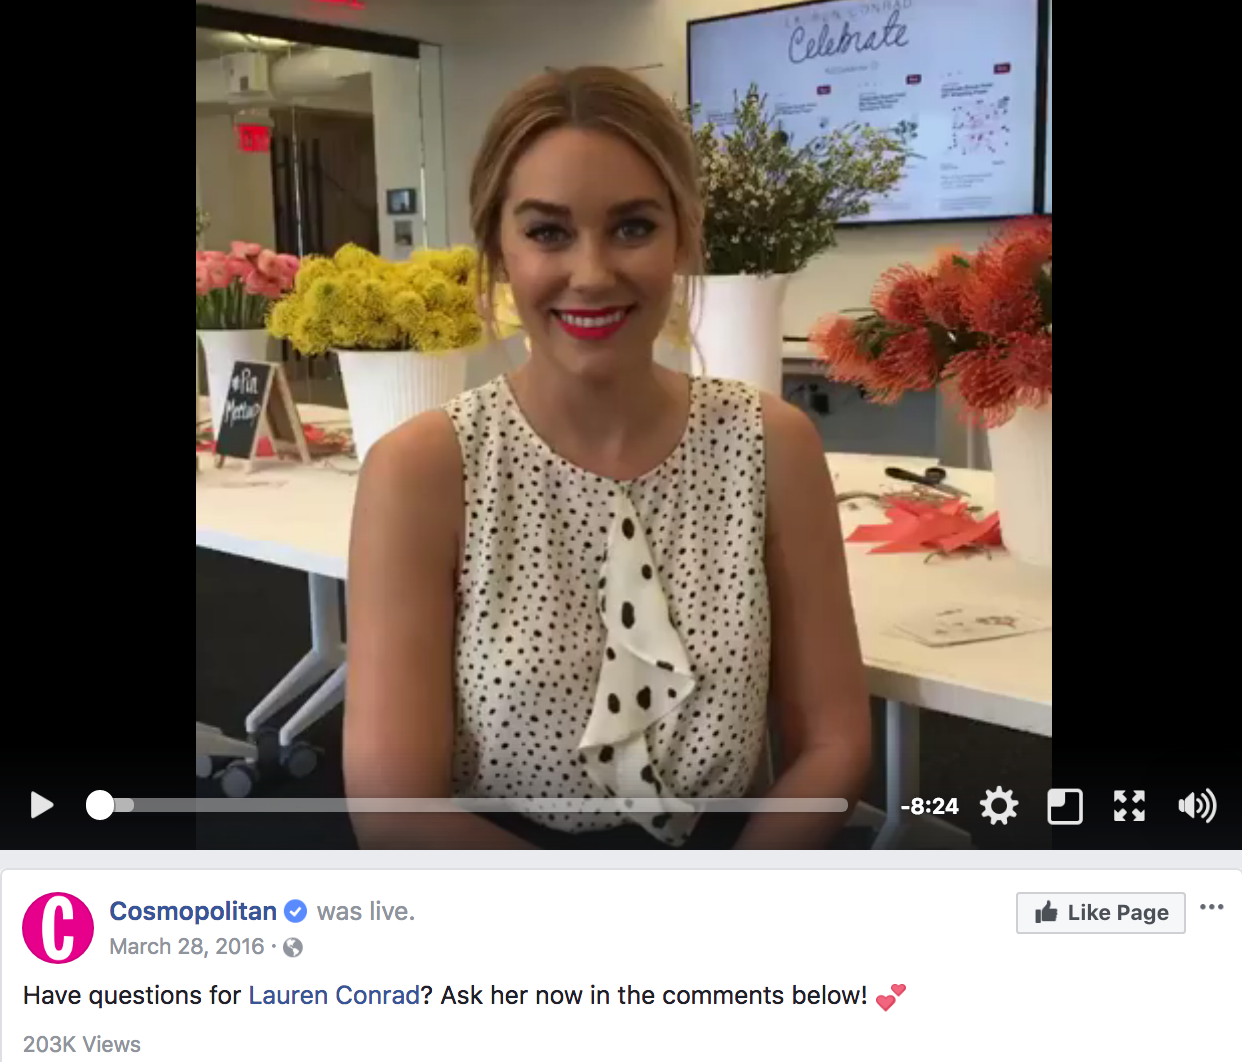 Influencer Lauren Conrad hosted the live stream on the official channel of Cosmopolitan.